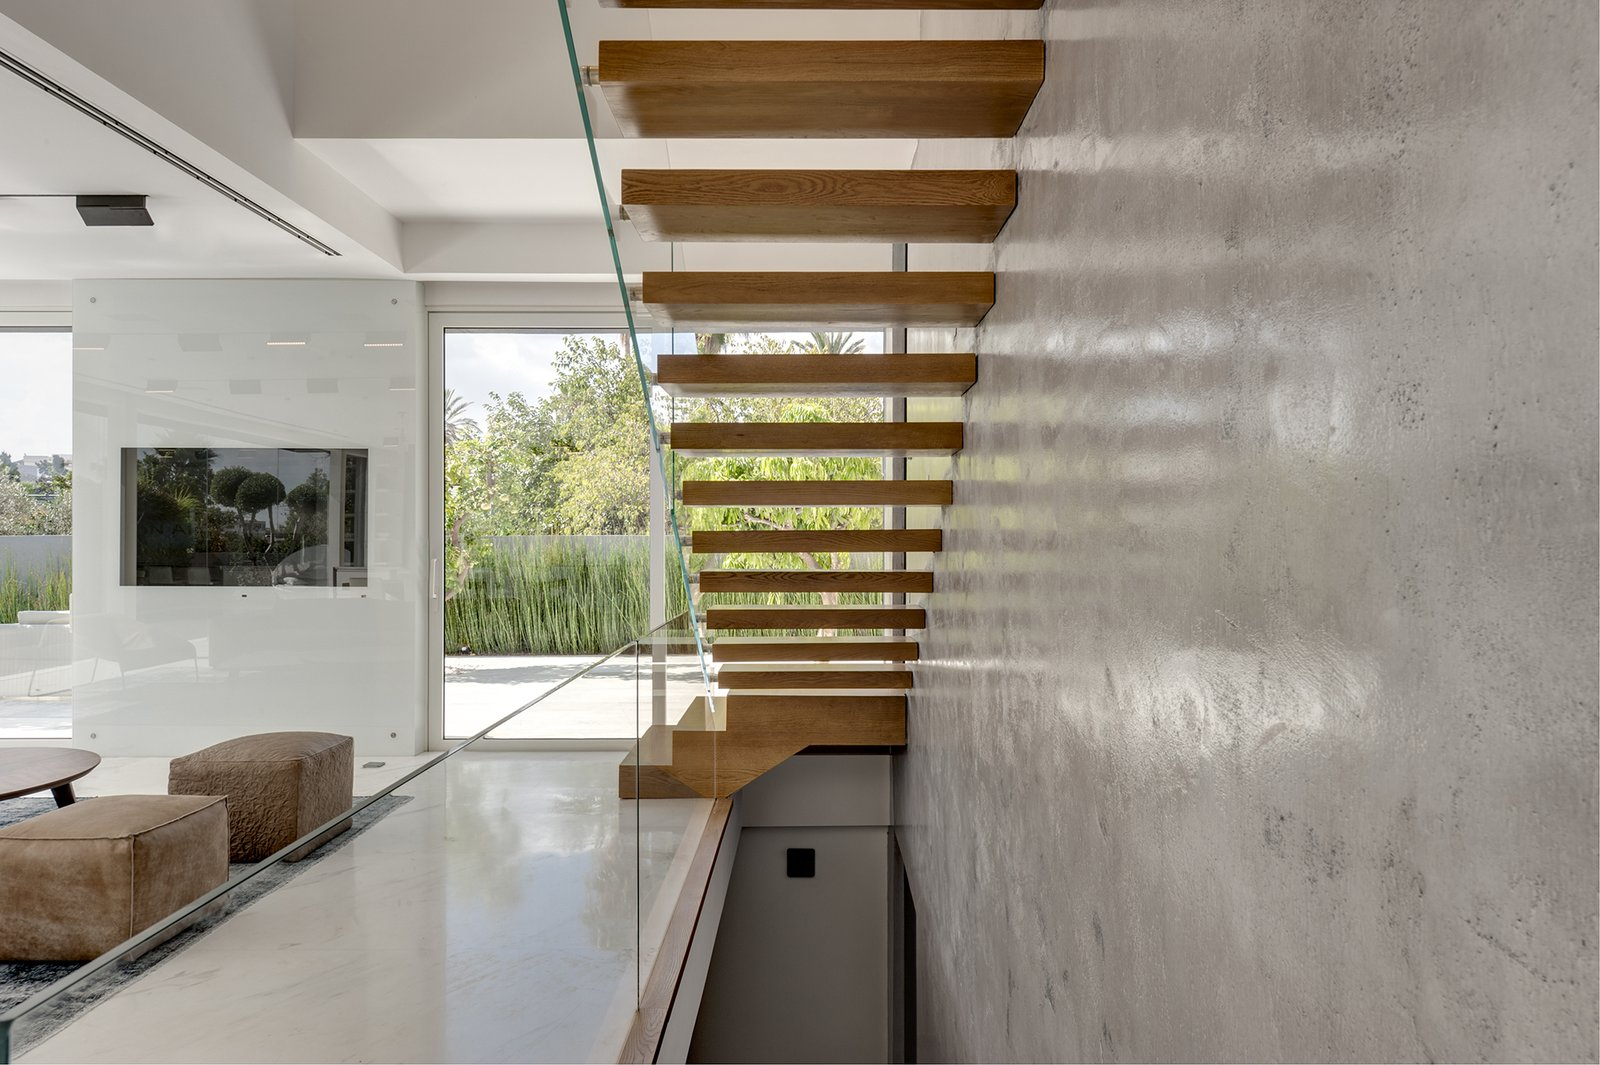 """Inside, the home immediately opens up with light and natural views. The cantilevered stairs leading to the first floor offer a dramatic focal point. The stairs, wrapped in natural oak, are anchored to the exposed concrete walls on one side, and bordered by a clear glass railing on the opposite side.  Search """"5 gravity defying cantilevers"""" from Rishon Le Zion 3"""